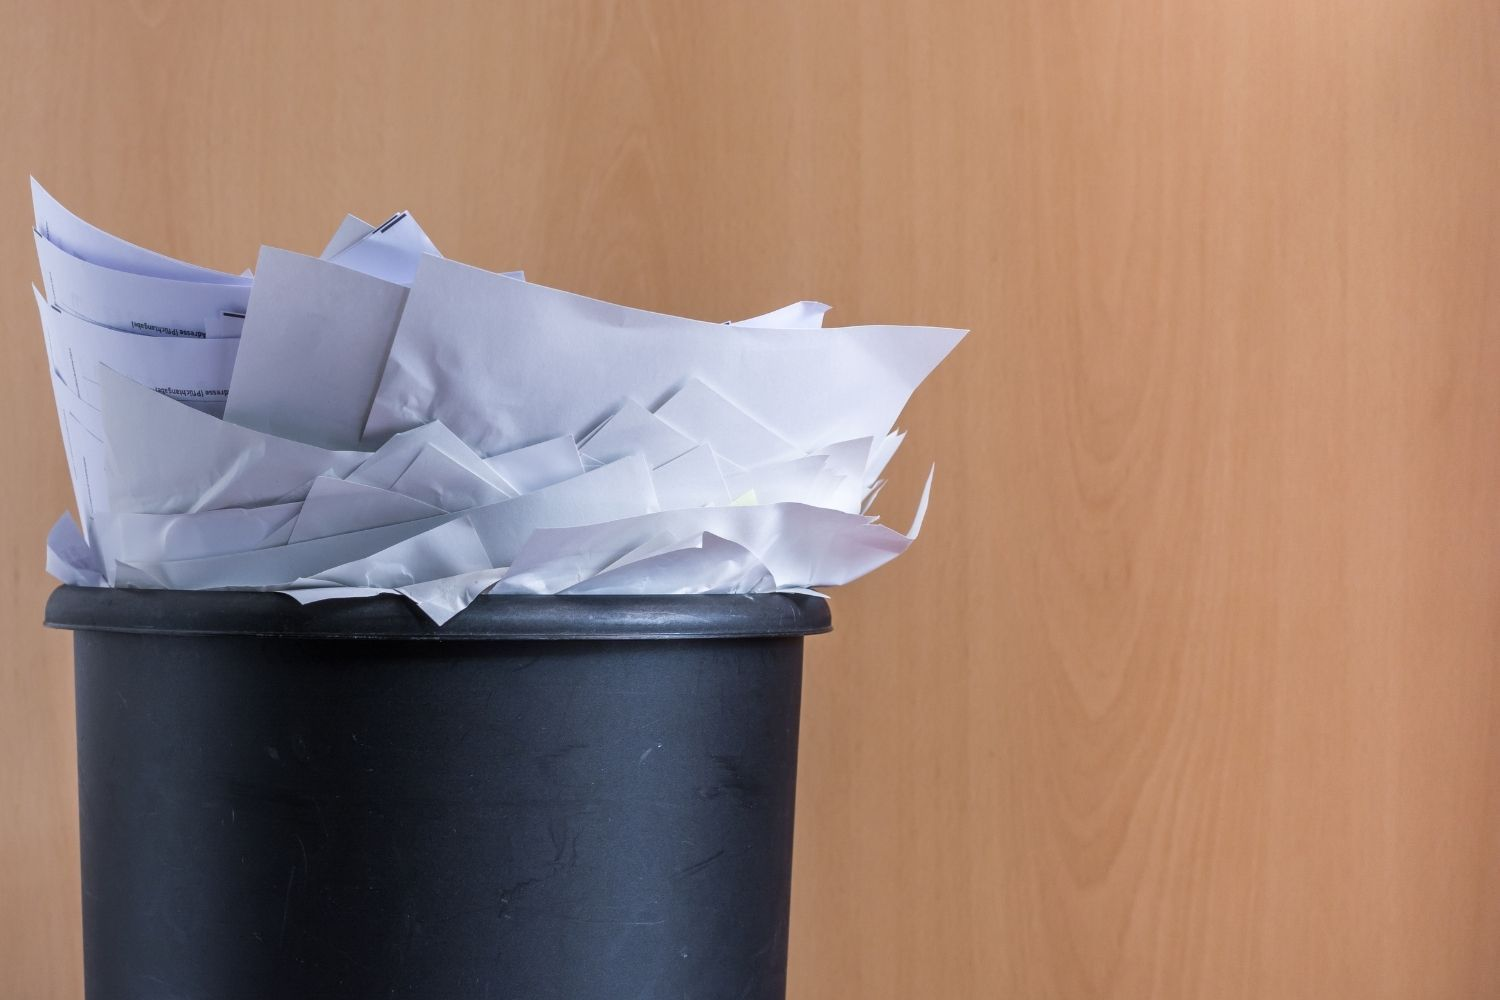 Discover ways of maintaining paper systems, tips for going paperless, and keeping paper organized!